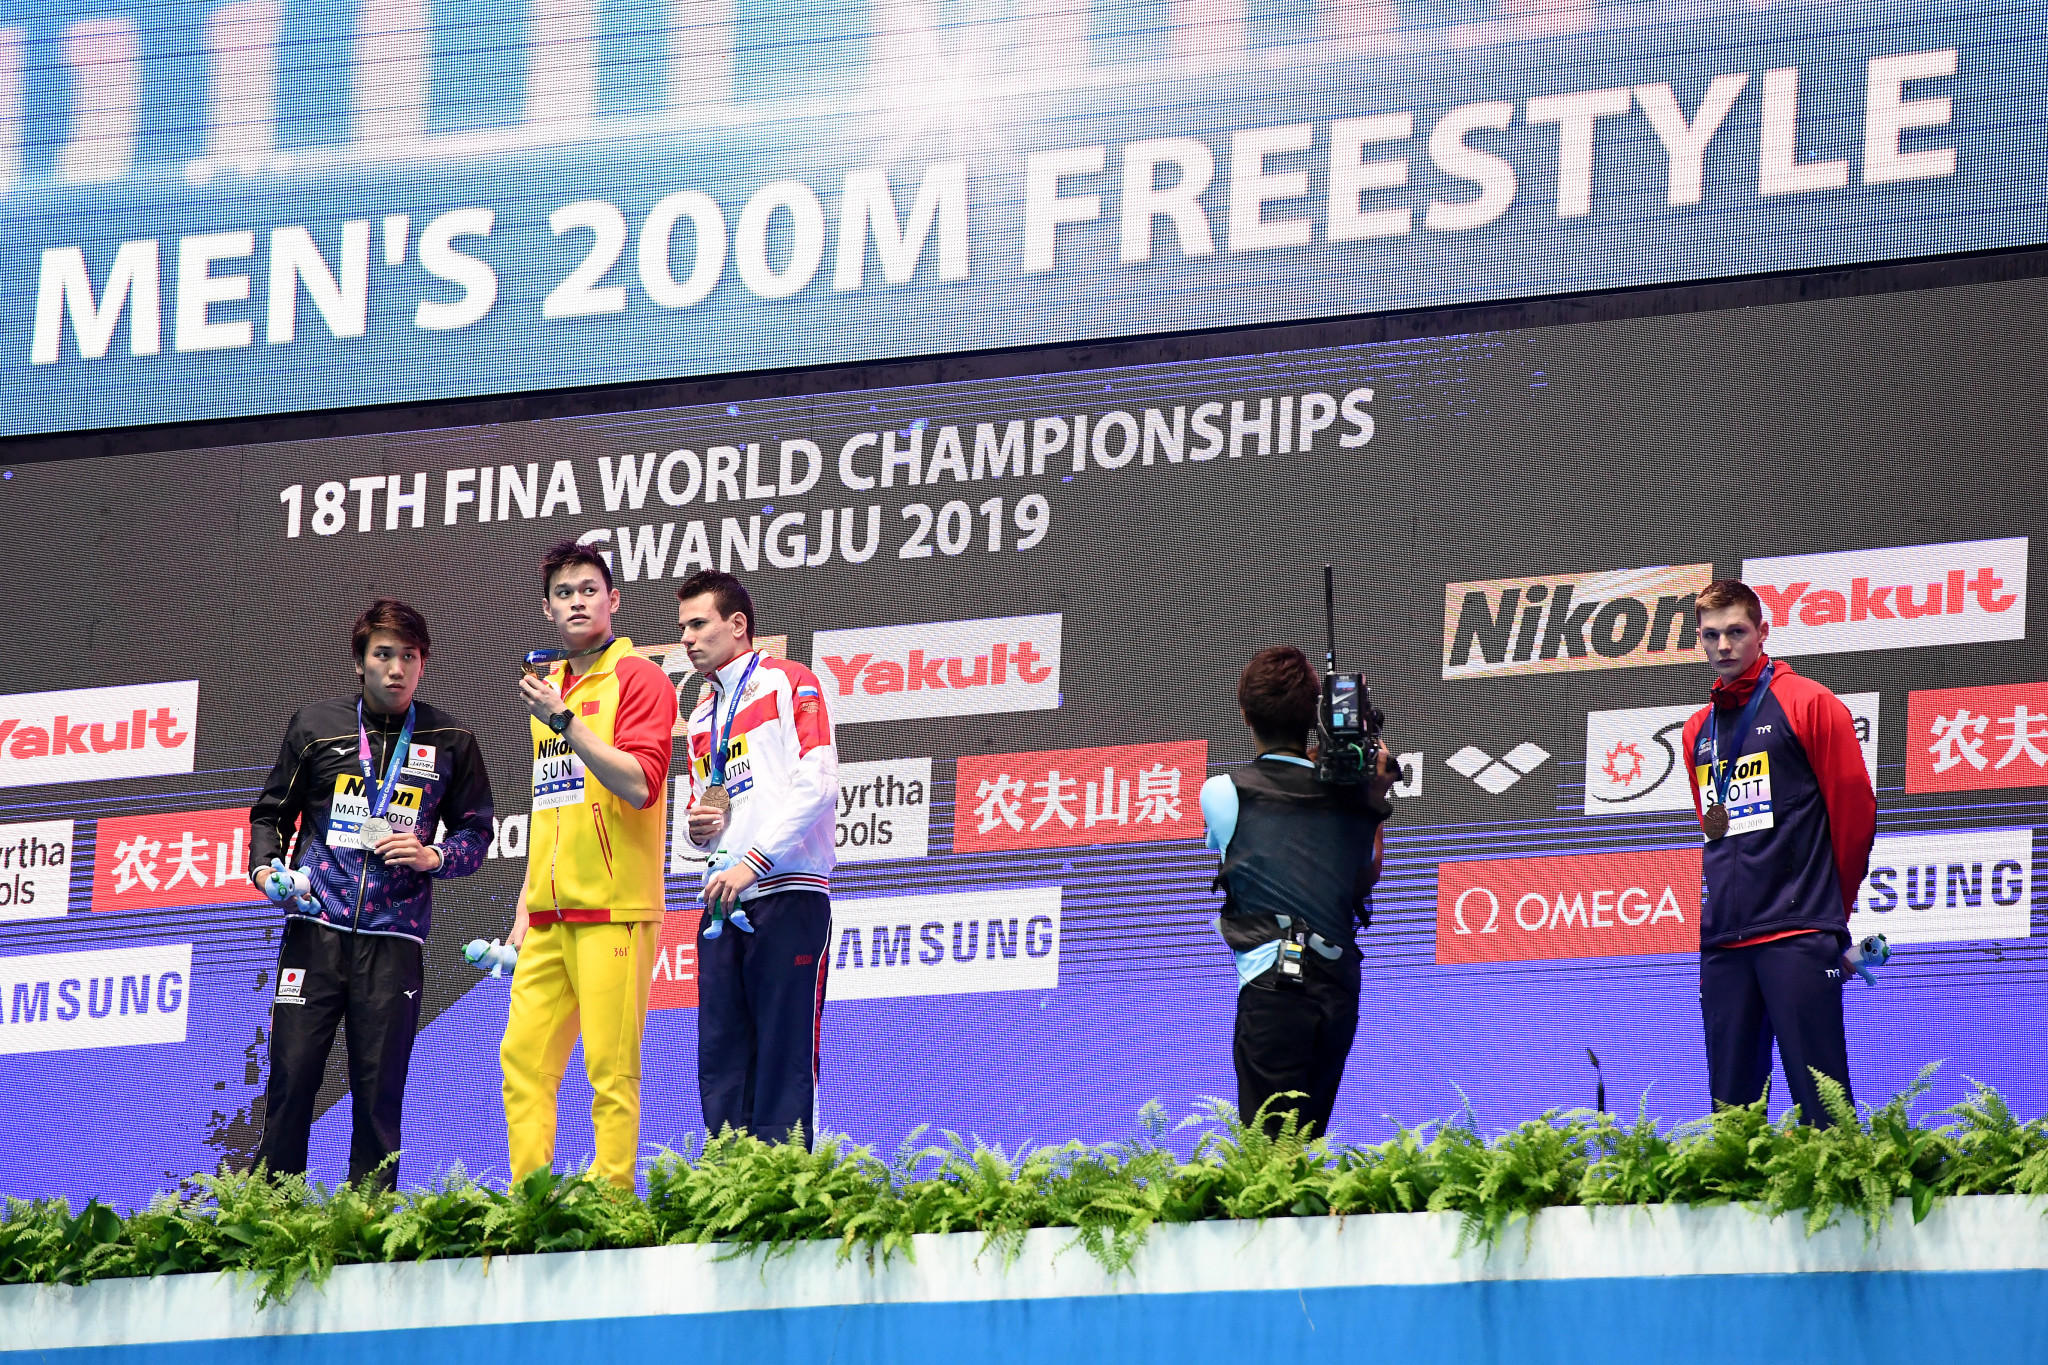 Sun Yang's rivals, including Britain's Duncan Scott, right, protested at medal ceremonies during the FINA World Aquatics Championships in Gwangju about the fact he had escaped a ban for allegedly destroying a blood sample ©Getty Images